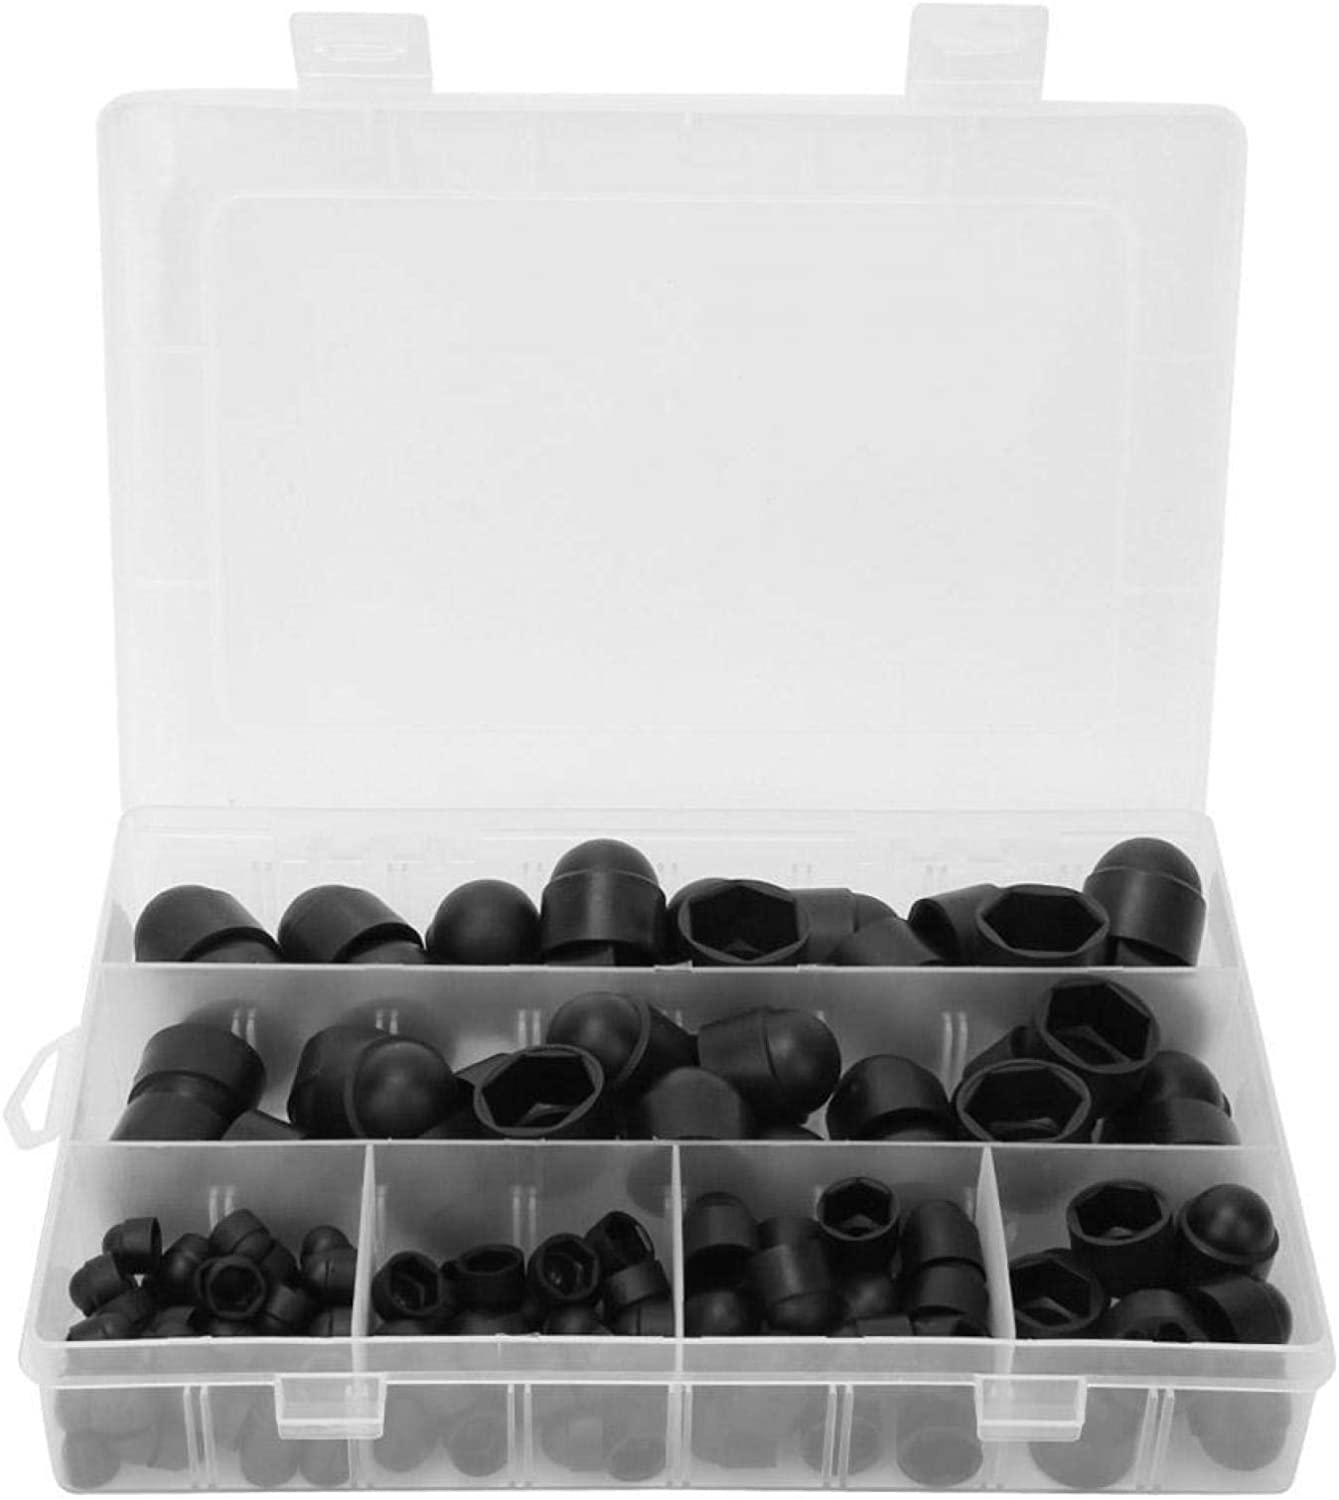 Protection Caps Dome Nut 145pcs M5 M4 Kit box Rubber Purchase Limited price sale